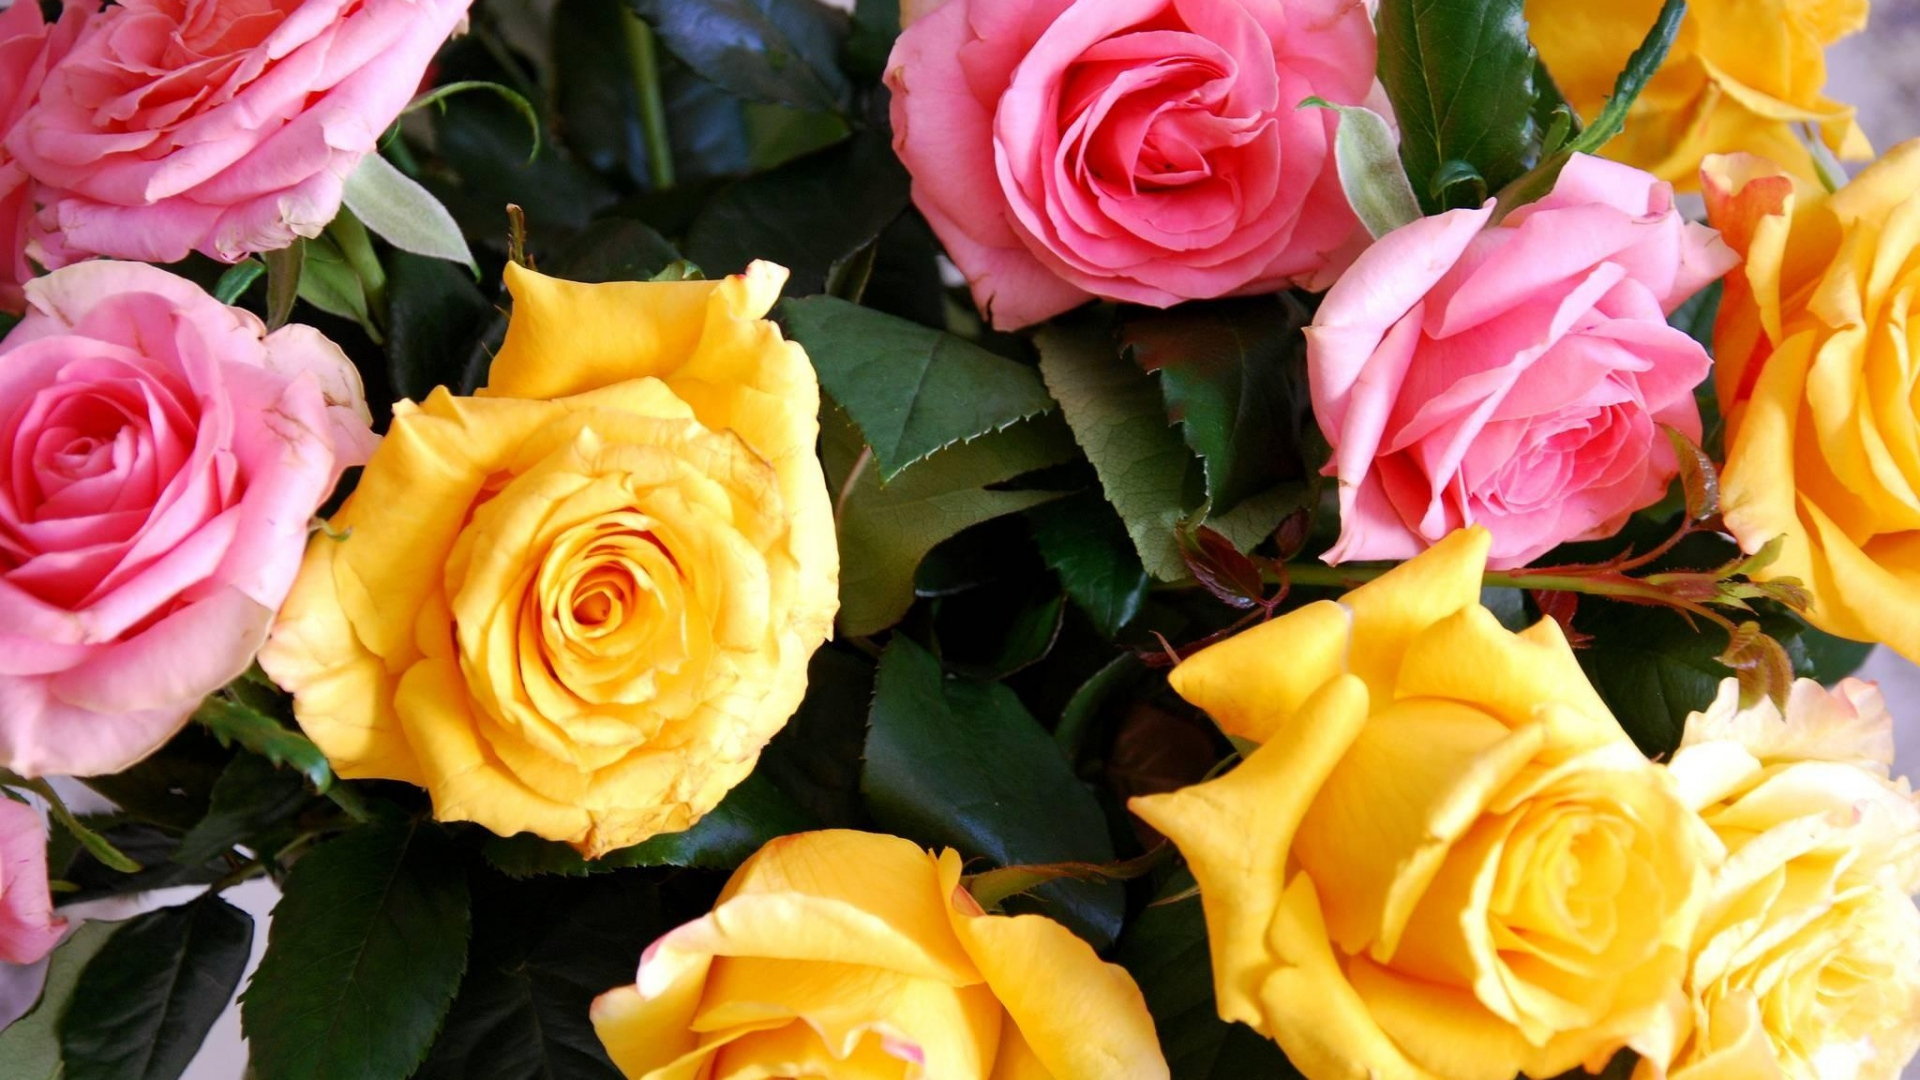 Download wallpaper 1920x1080 roses yellow pink bouquet buds full roses yellow pink mightylinksfo Gallery